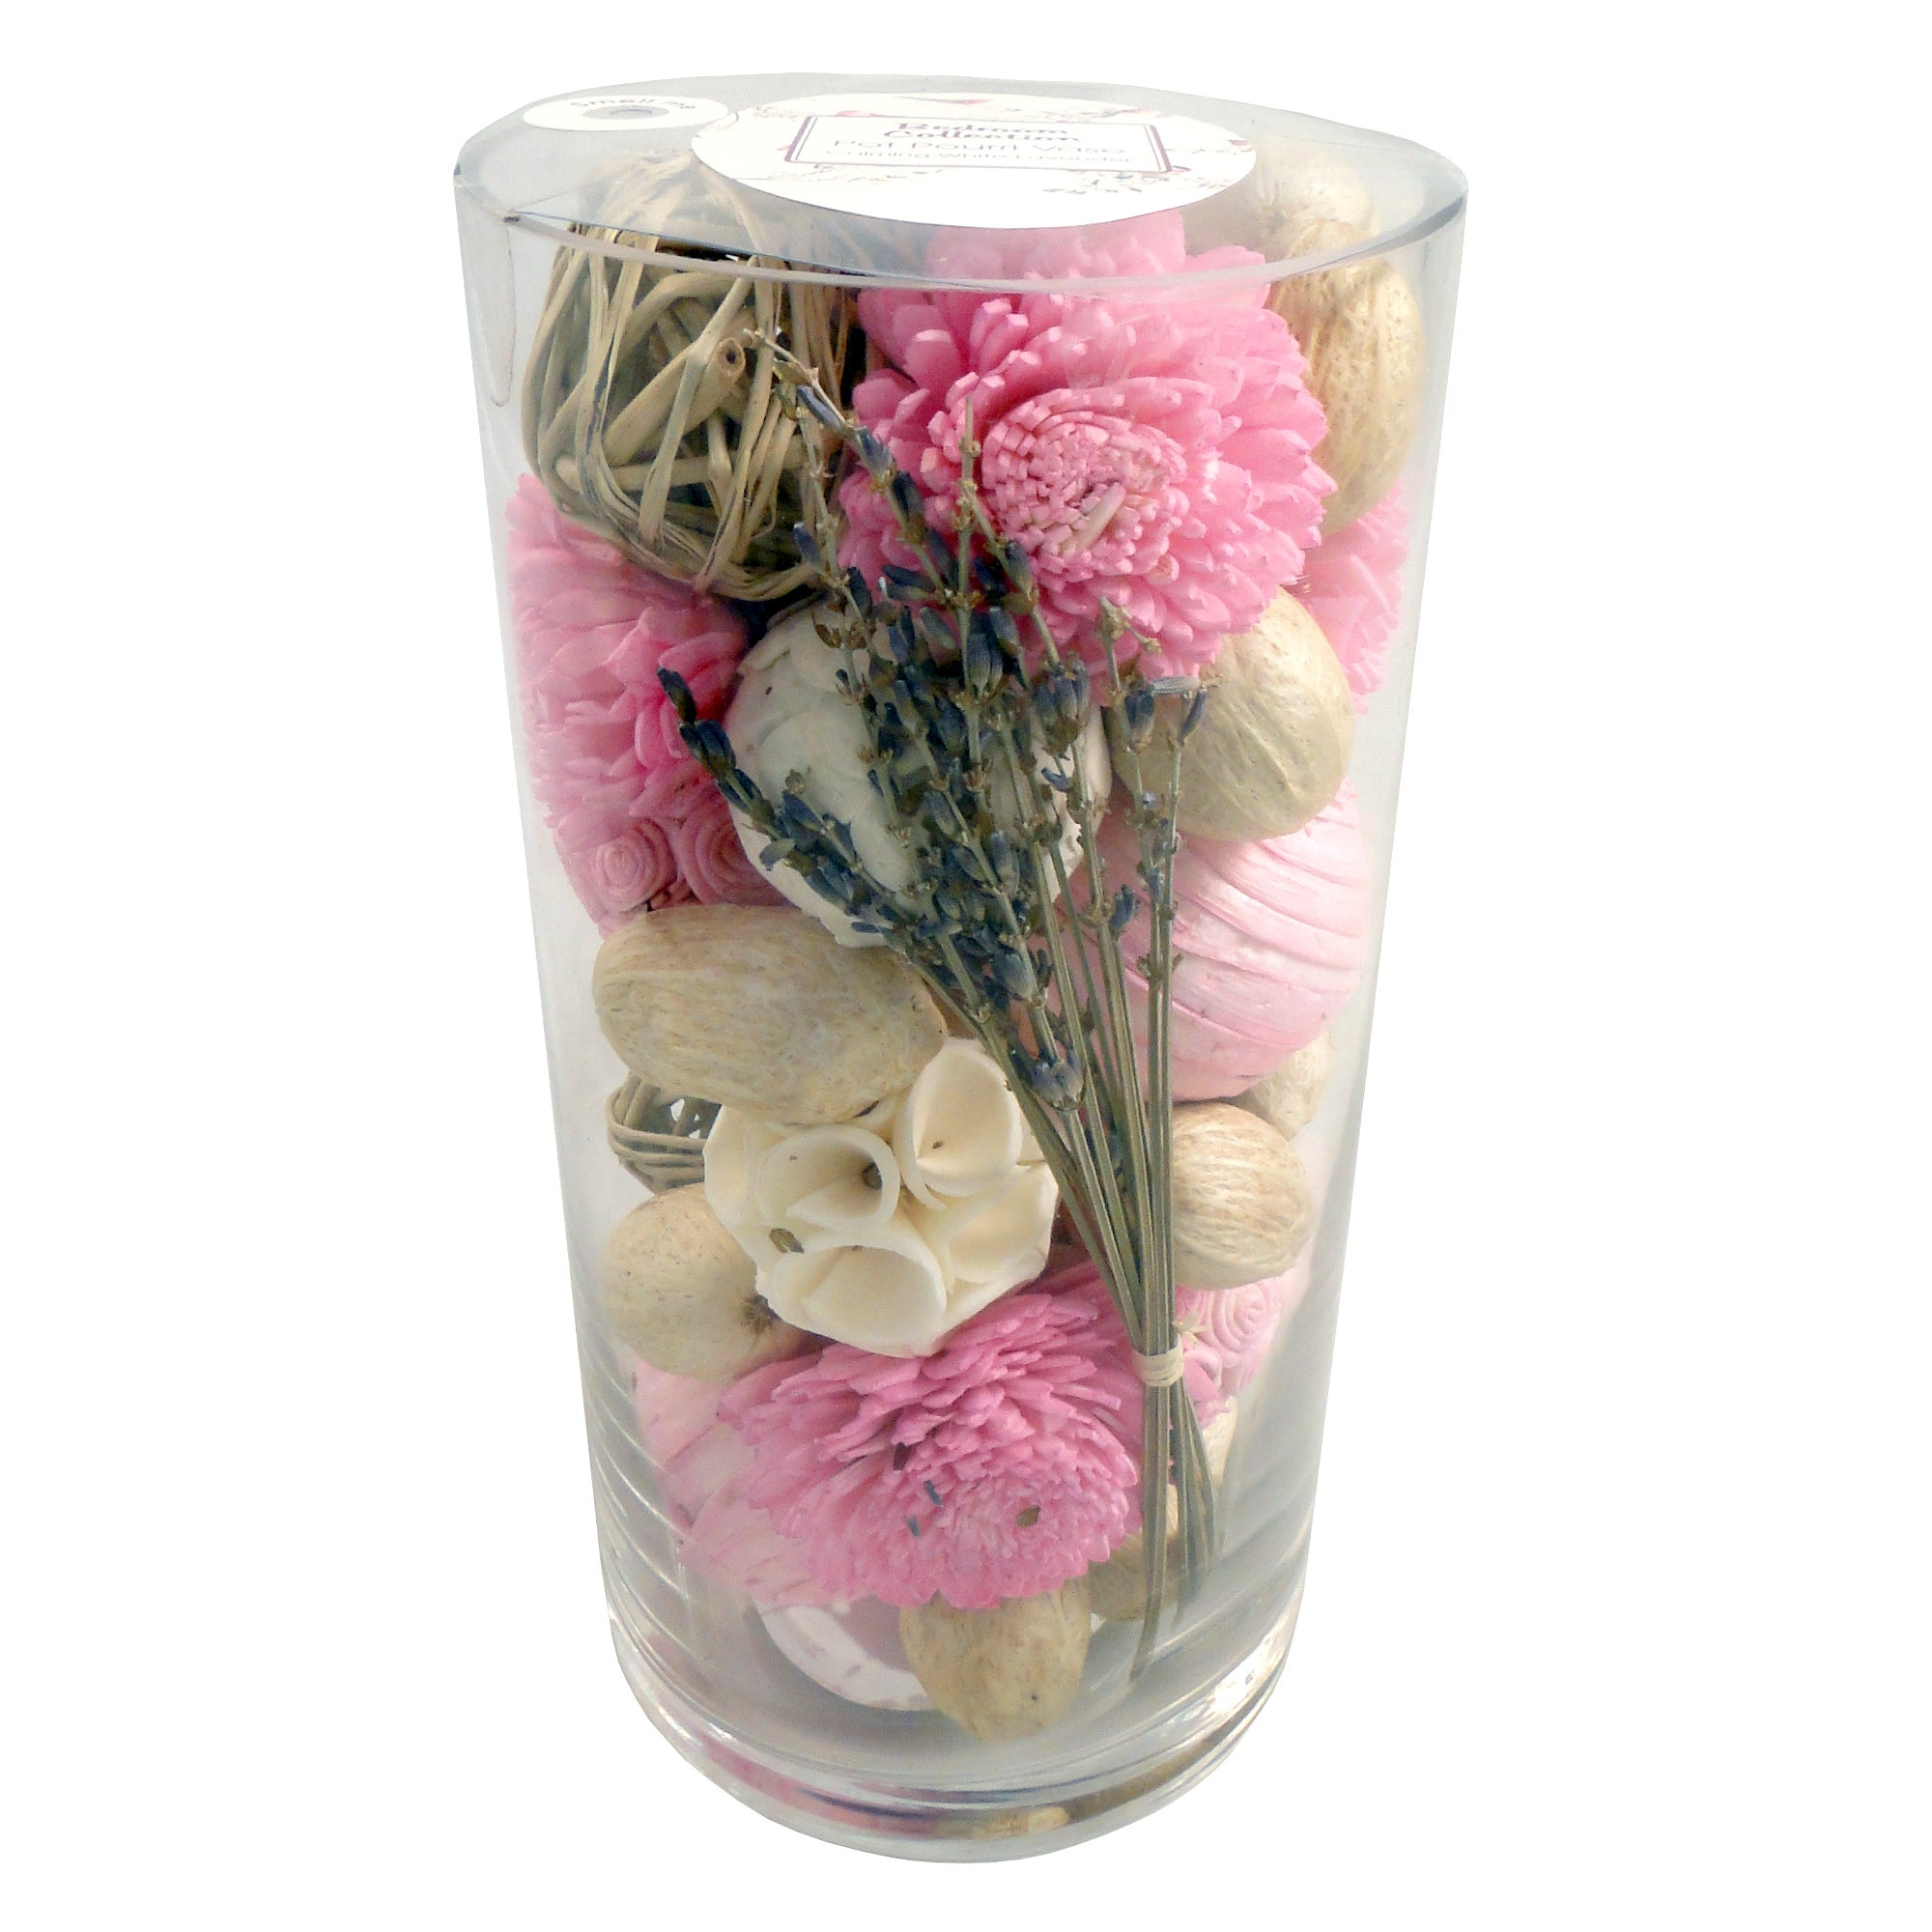 Bedroom Collection Pot Pourri in Vase